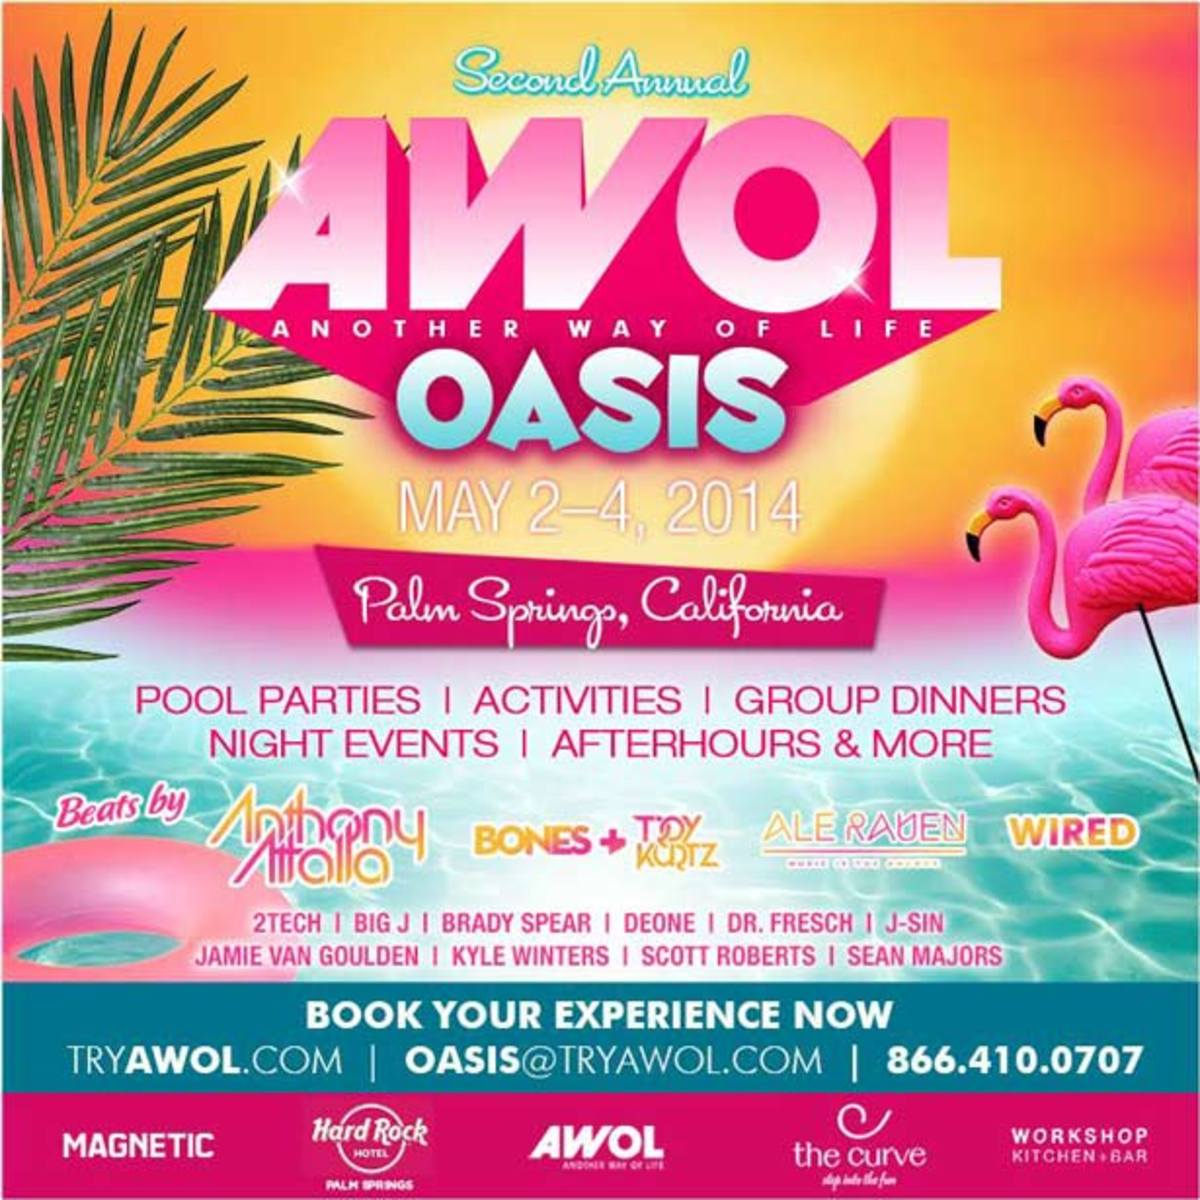 AWOL Oasis Palm Spring